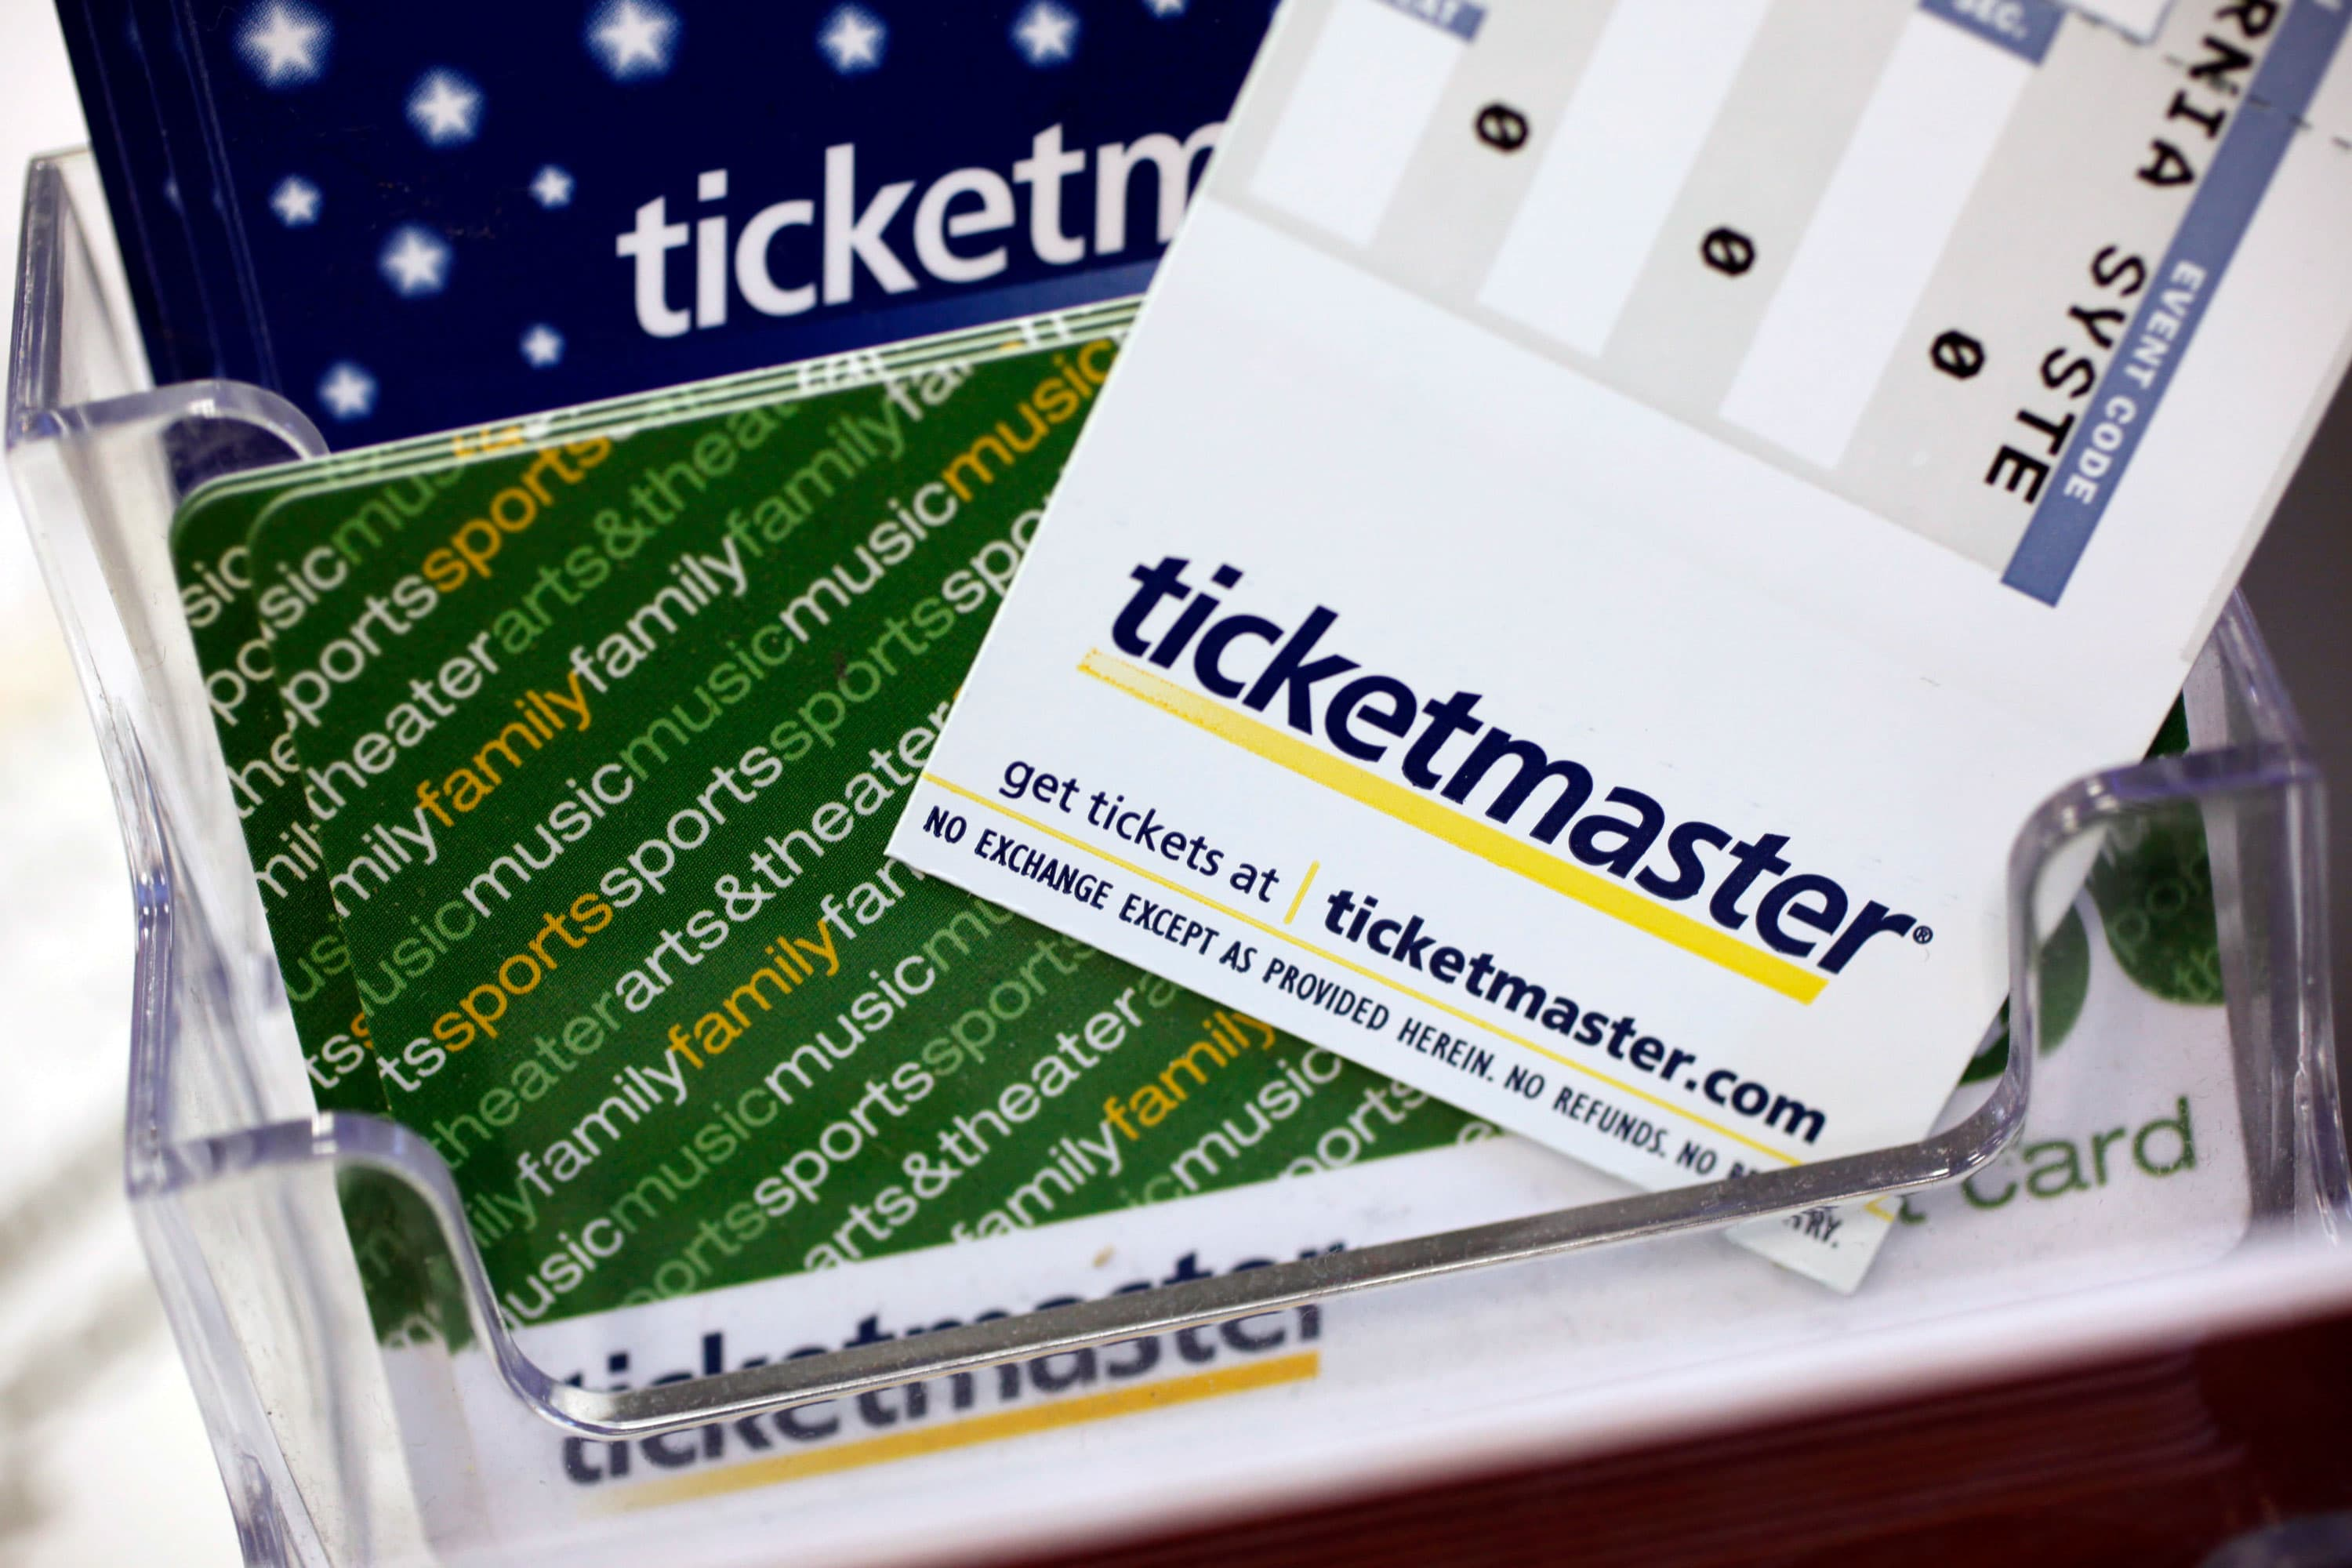 Ticketmaster owner Live Nation falls on report of planned DOJ action for alleged merger agreement violation